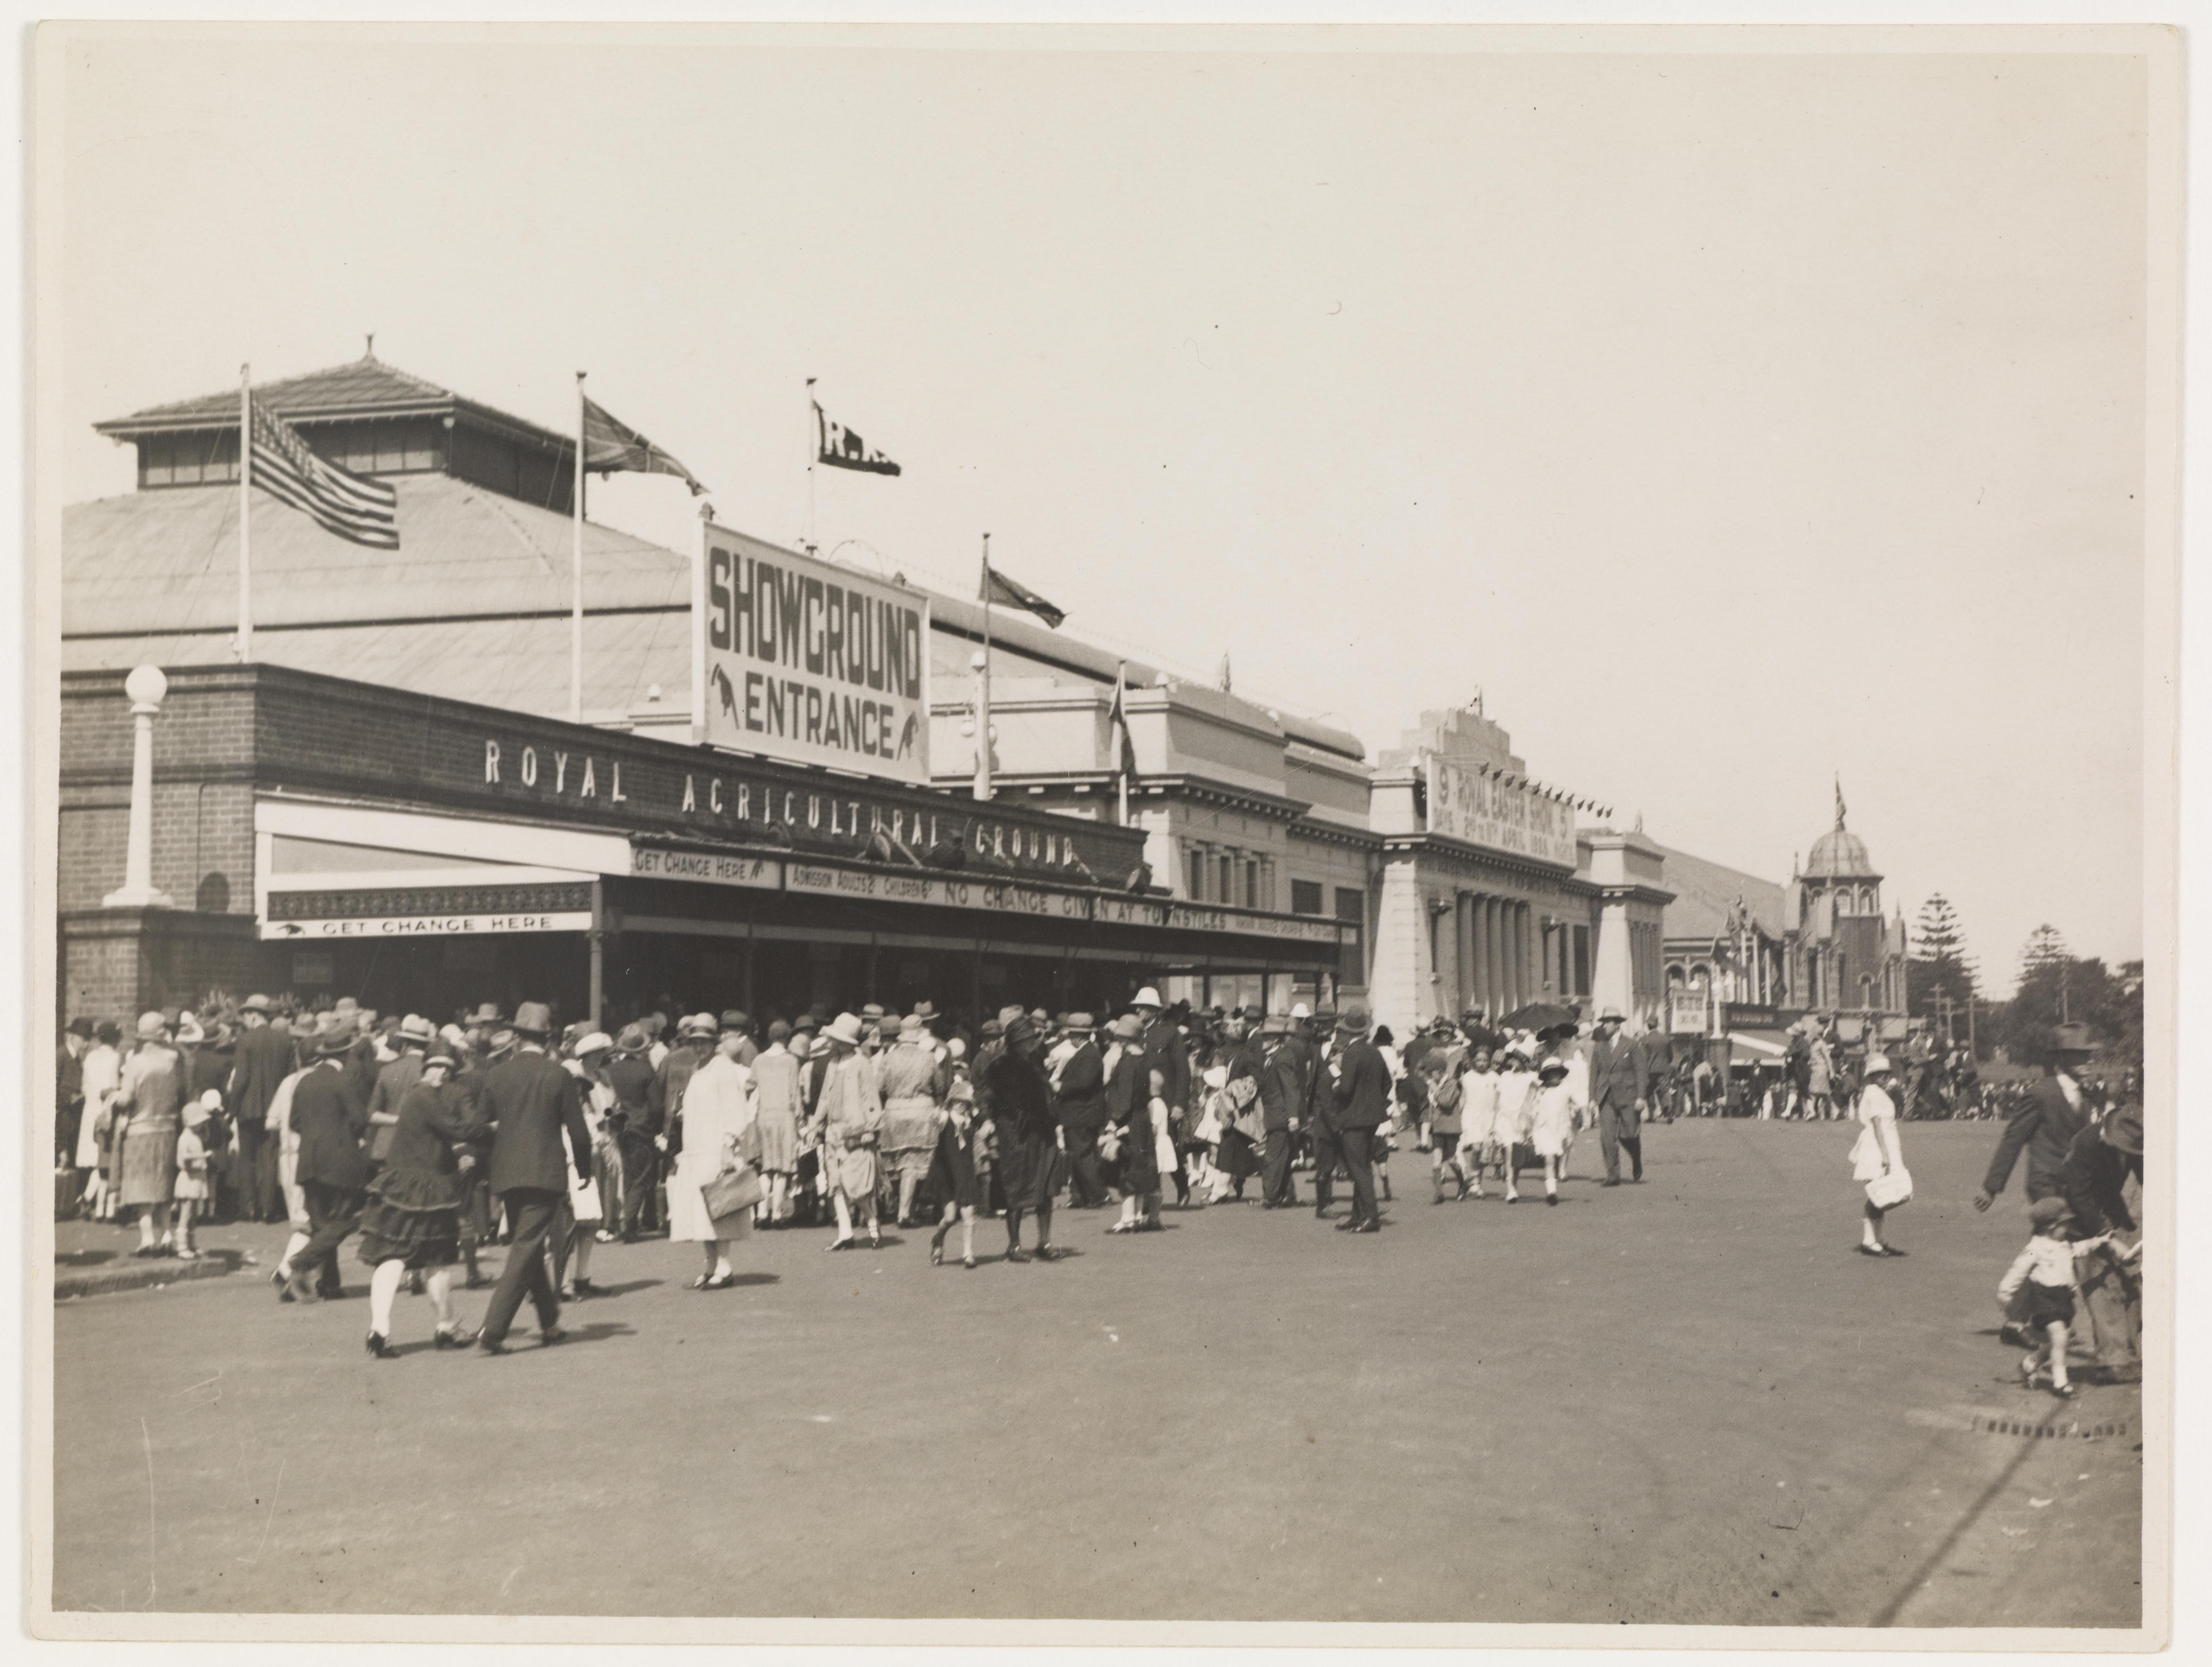 Views of the Showground, pavilions and crowds, c. 1930s by Sam Hood